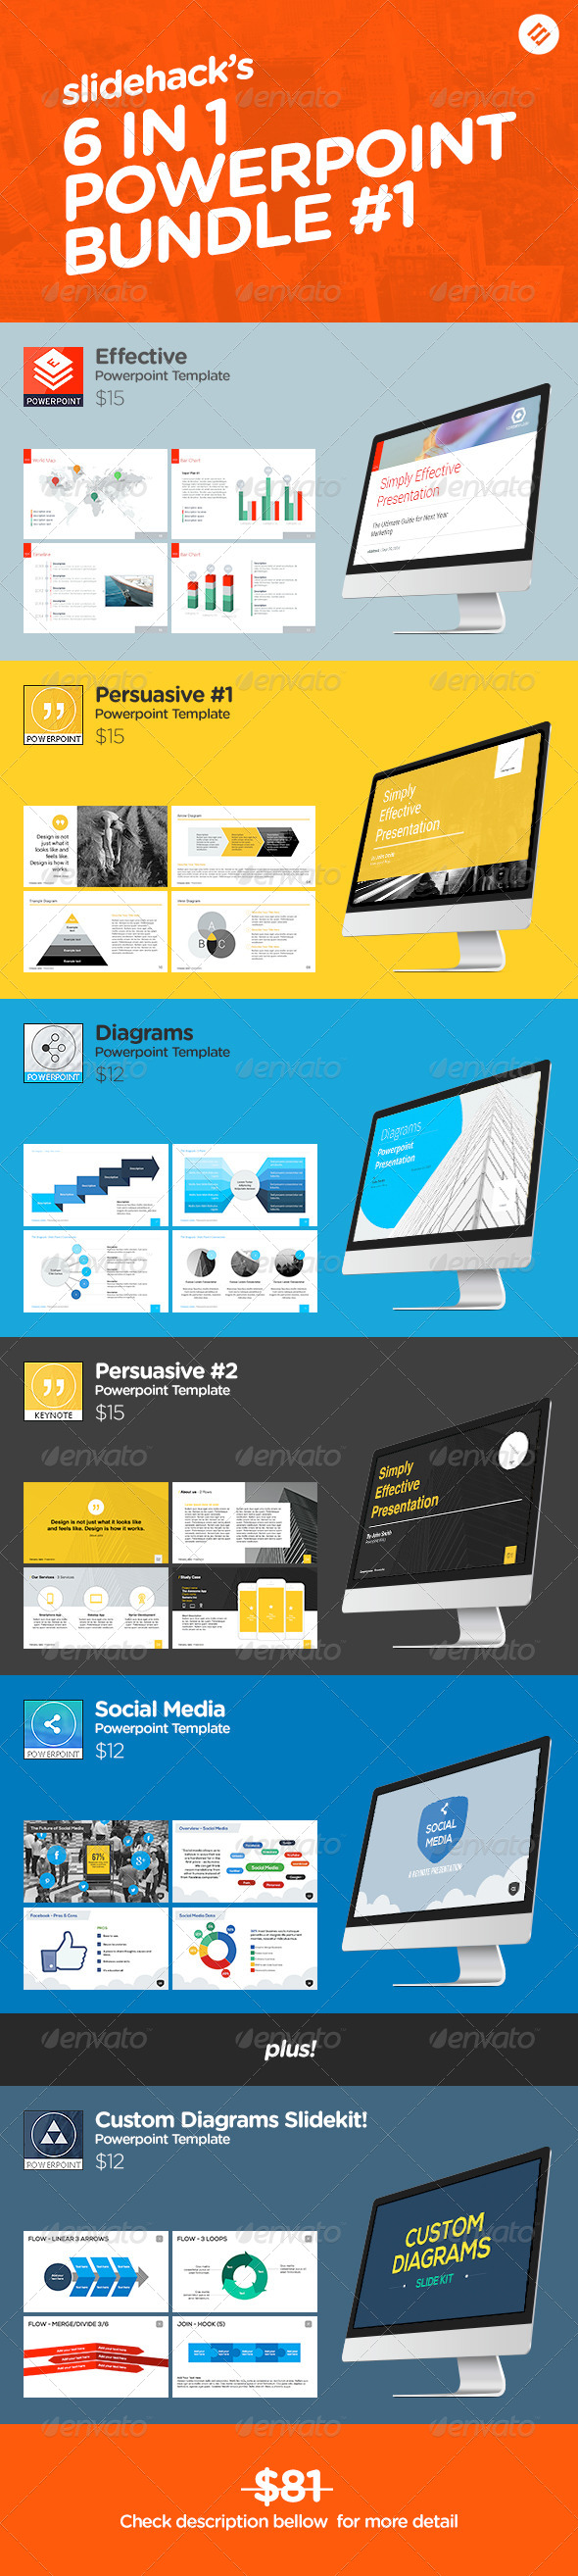 GraphicRiver Slidehack s 6 in 1 Powerpoint Bundle 7481469